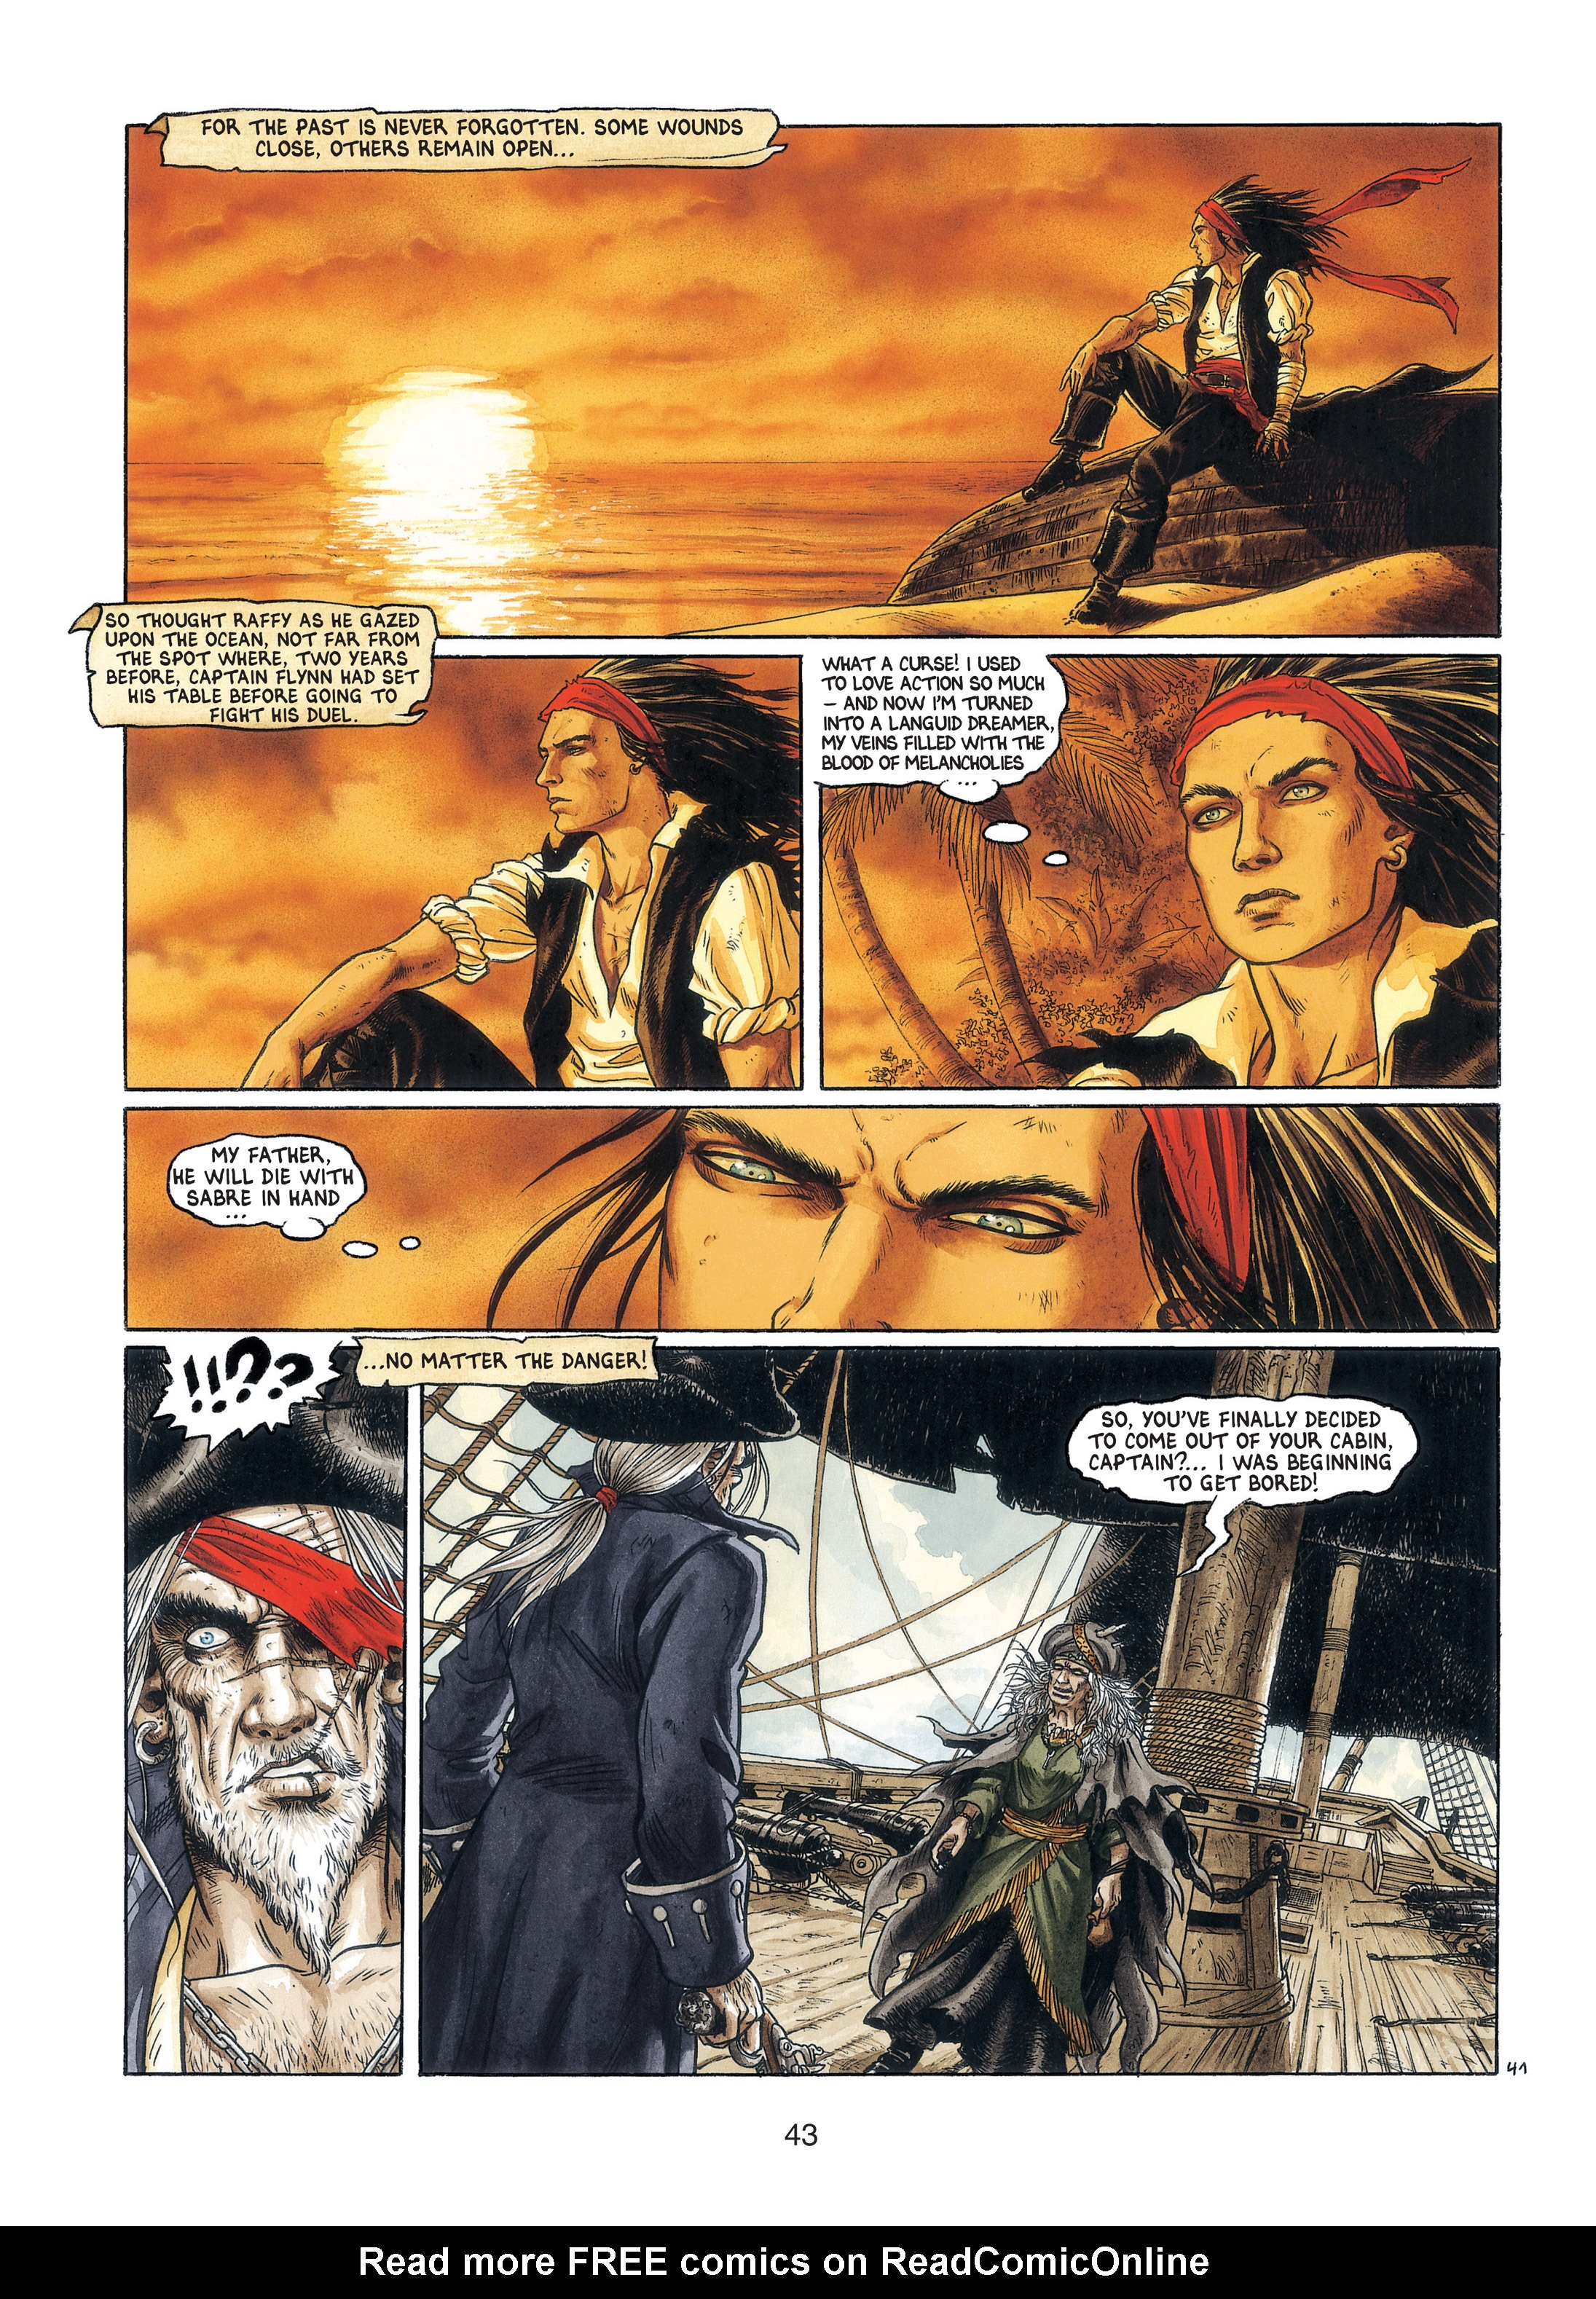 Read online Barracuda comic -  Issue #3 - 44